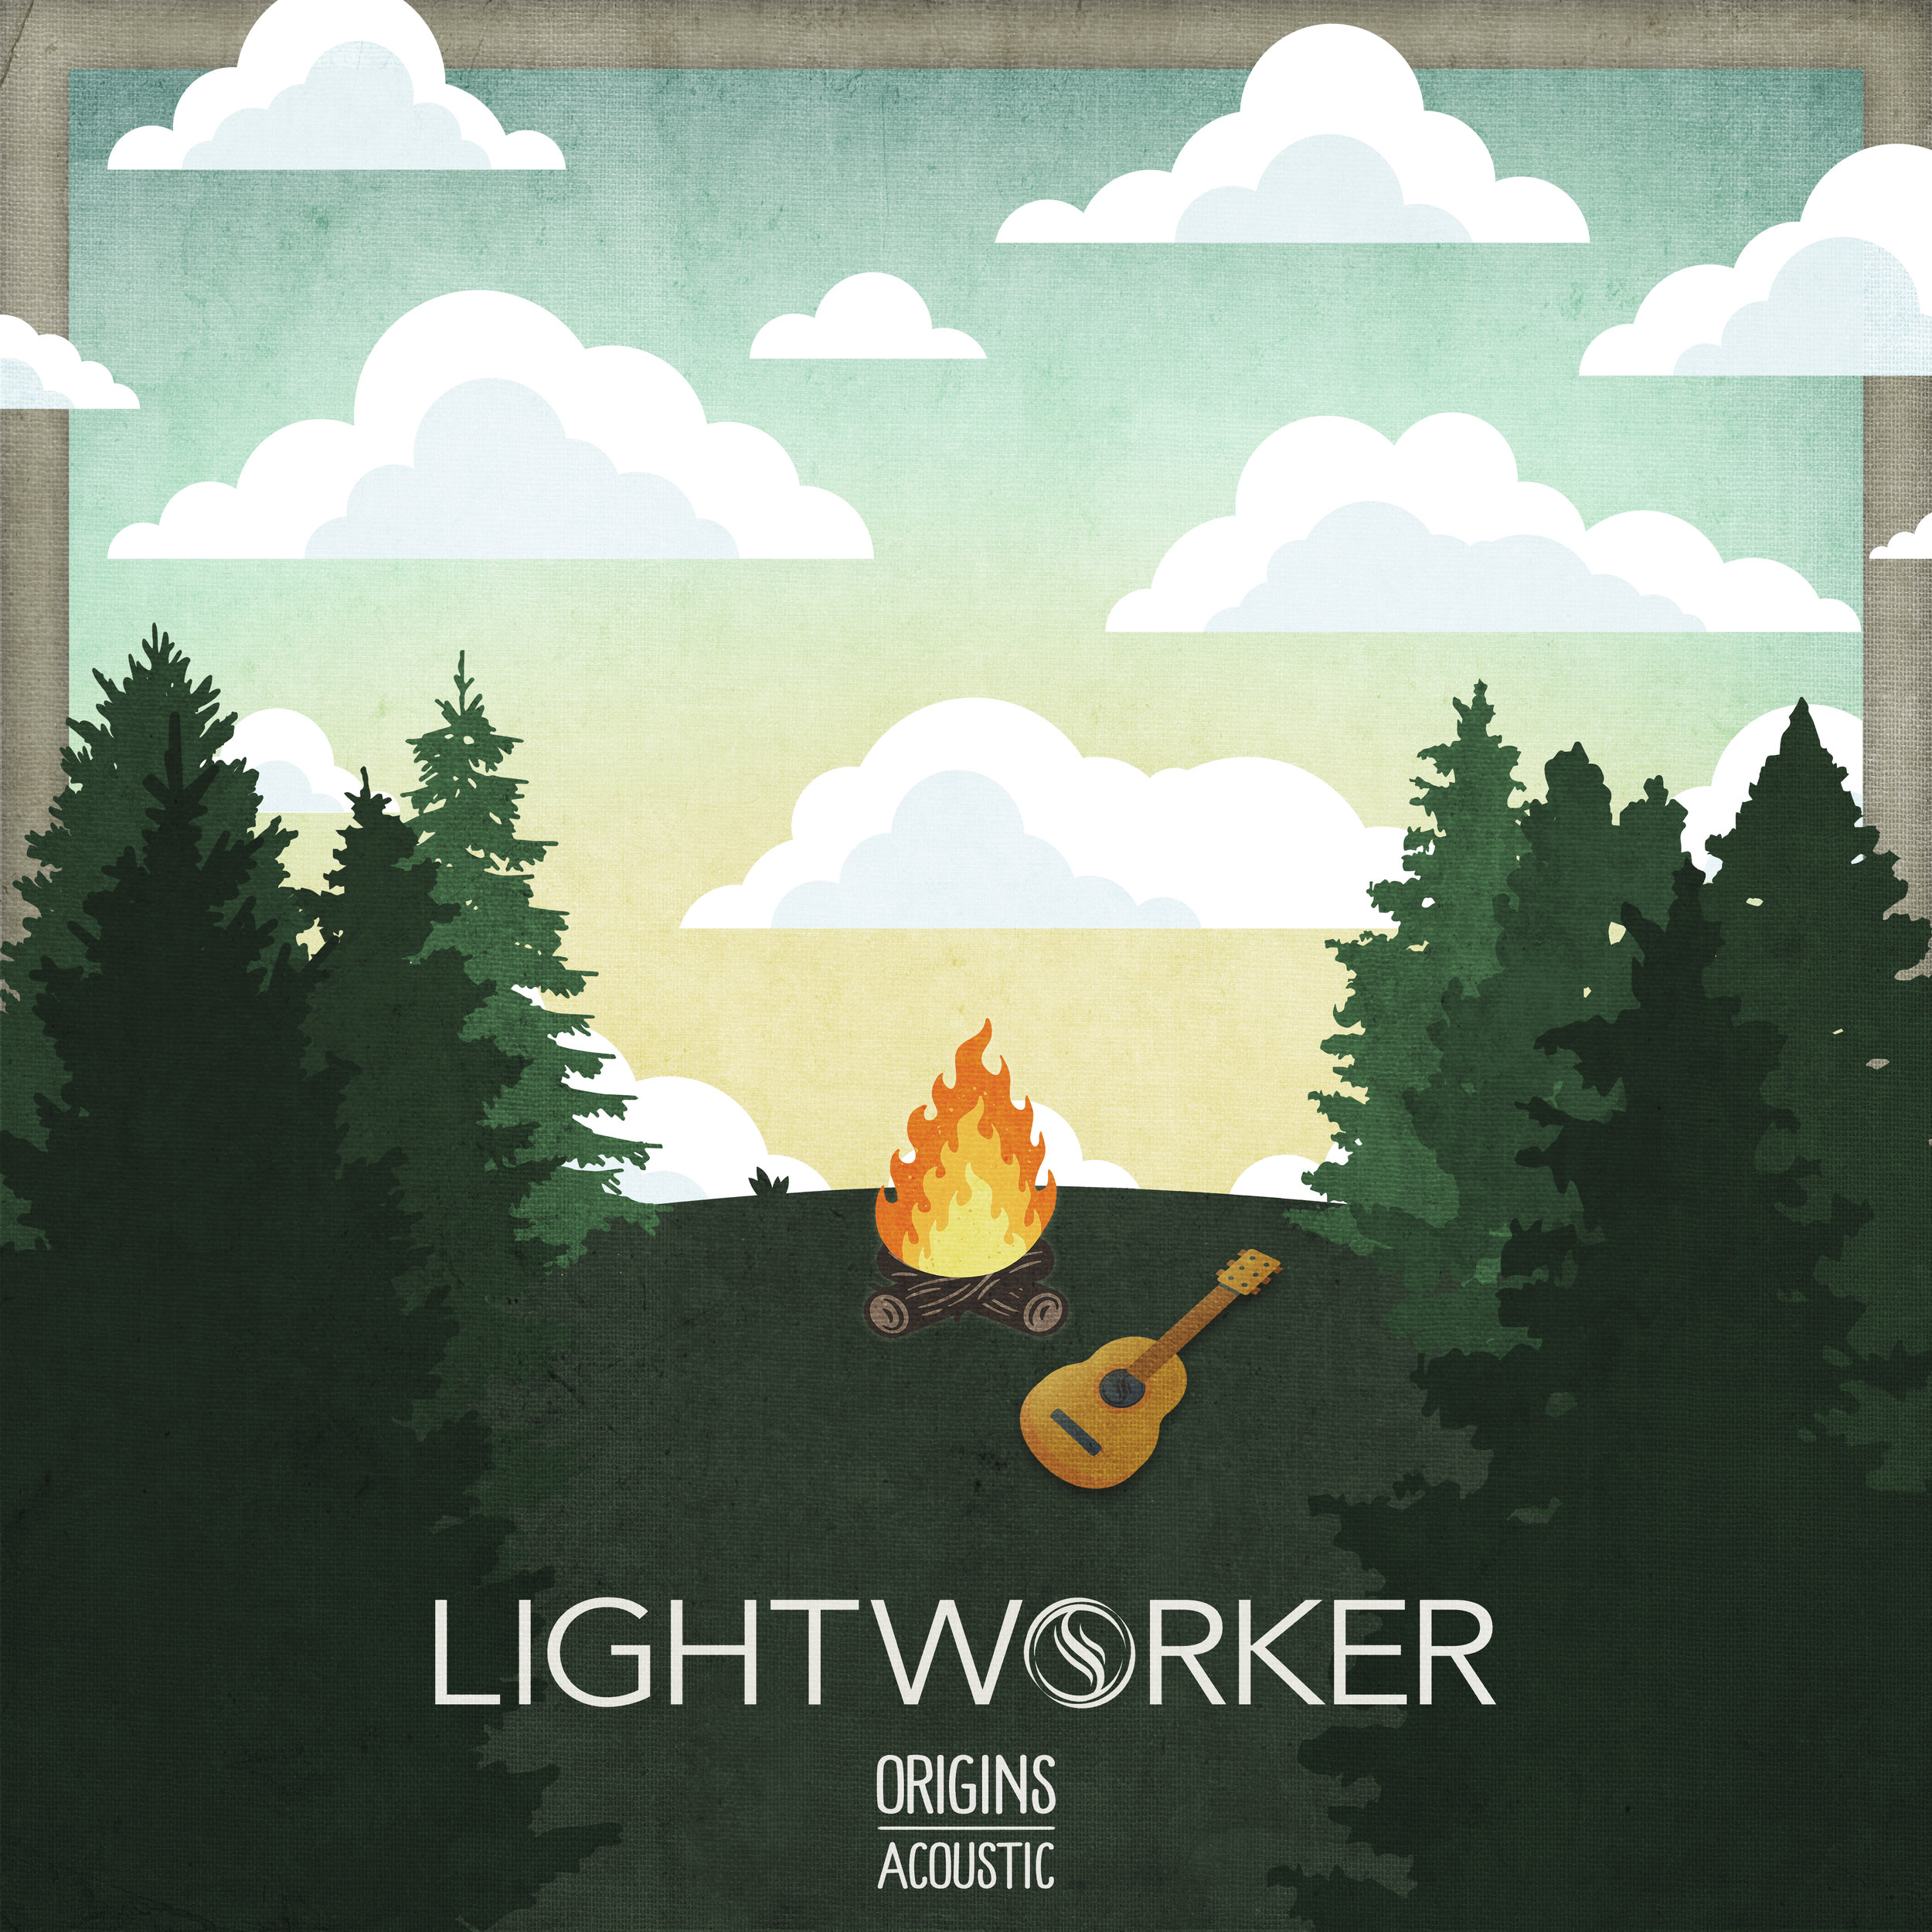 Lightworker-OriginsAcoustic-Artwork.jpg